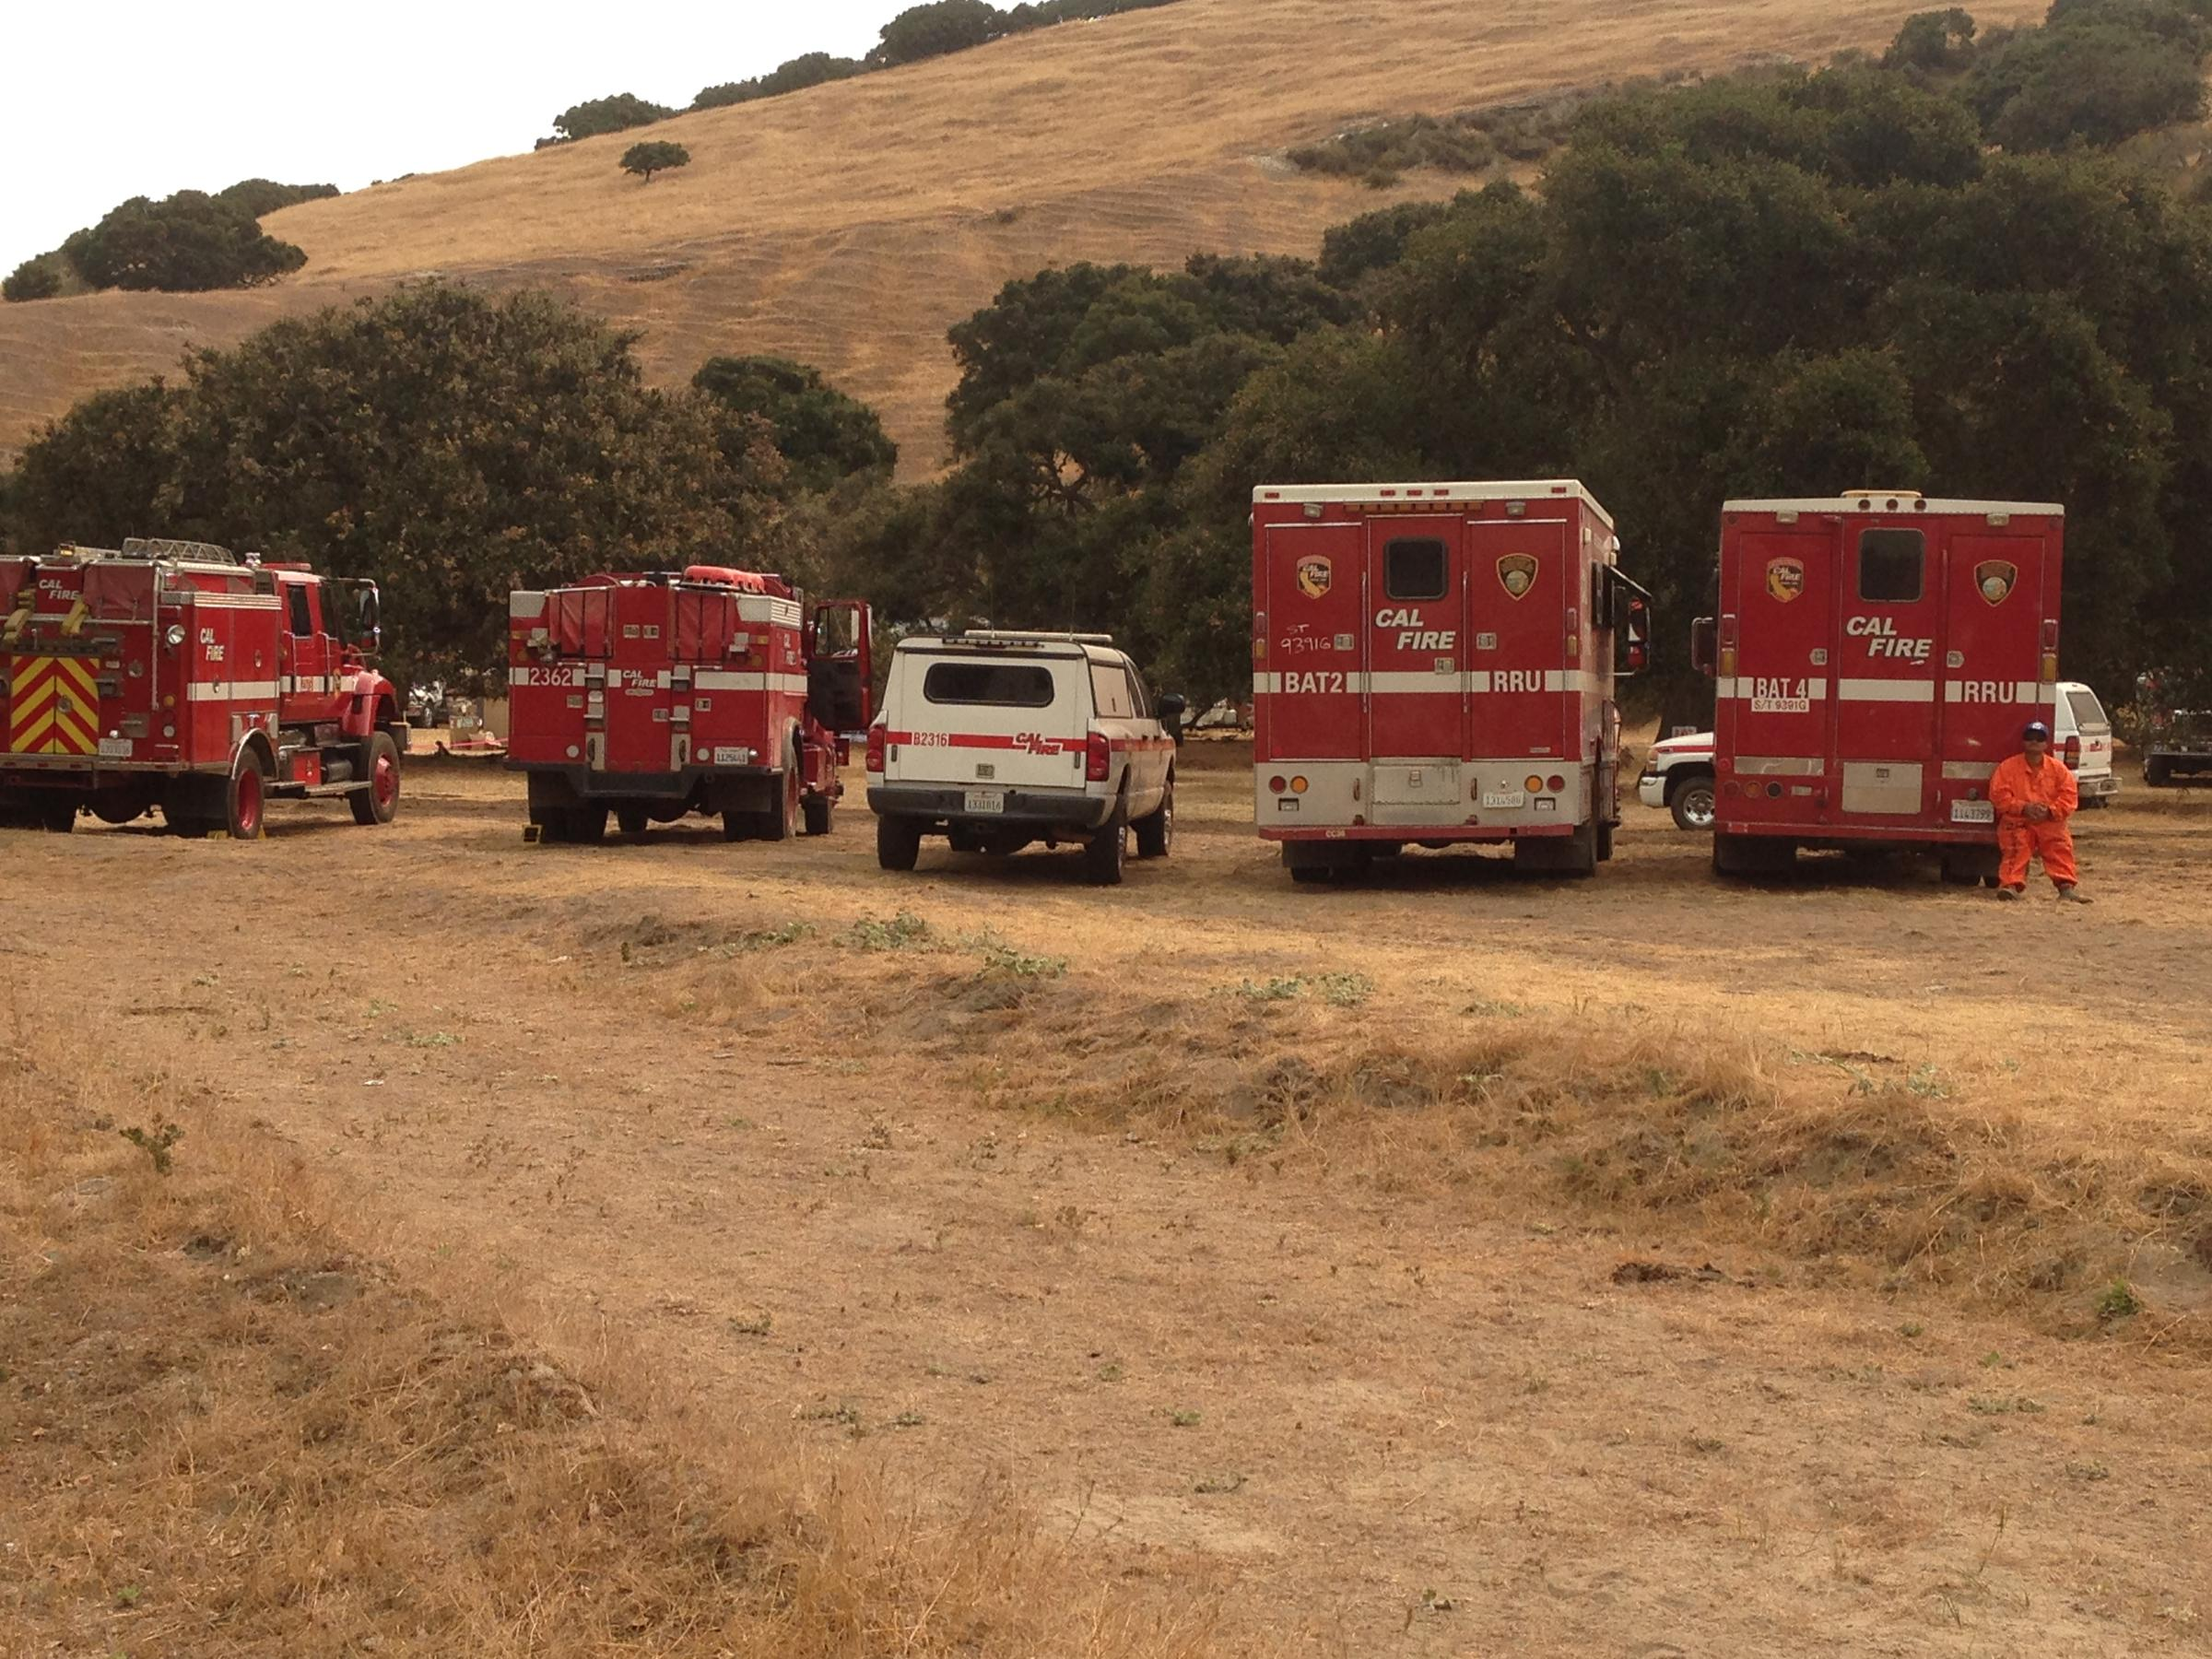 Soberanes Fire Bulldozer Operator Killed Overnight